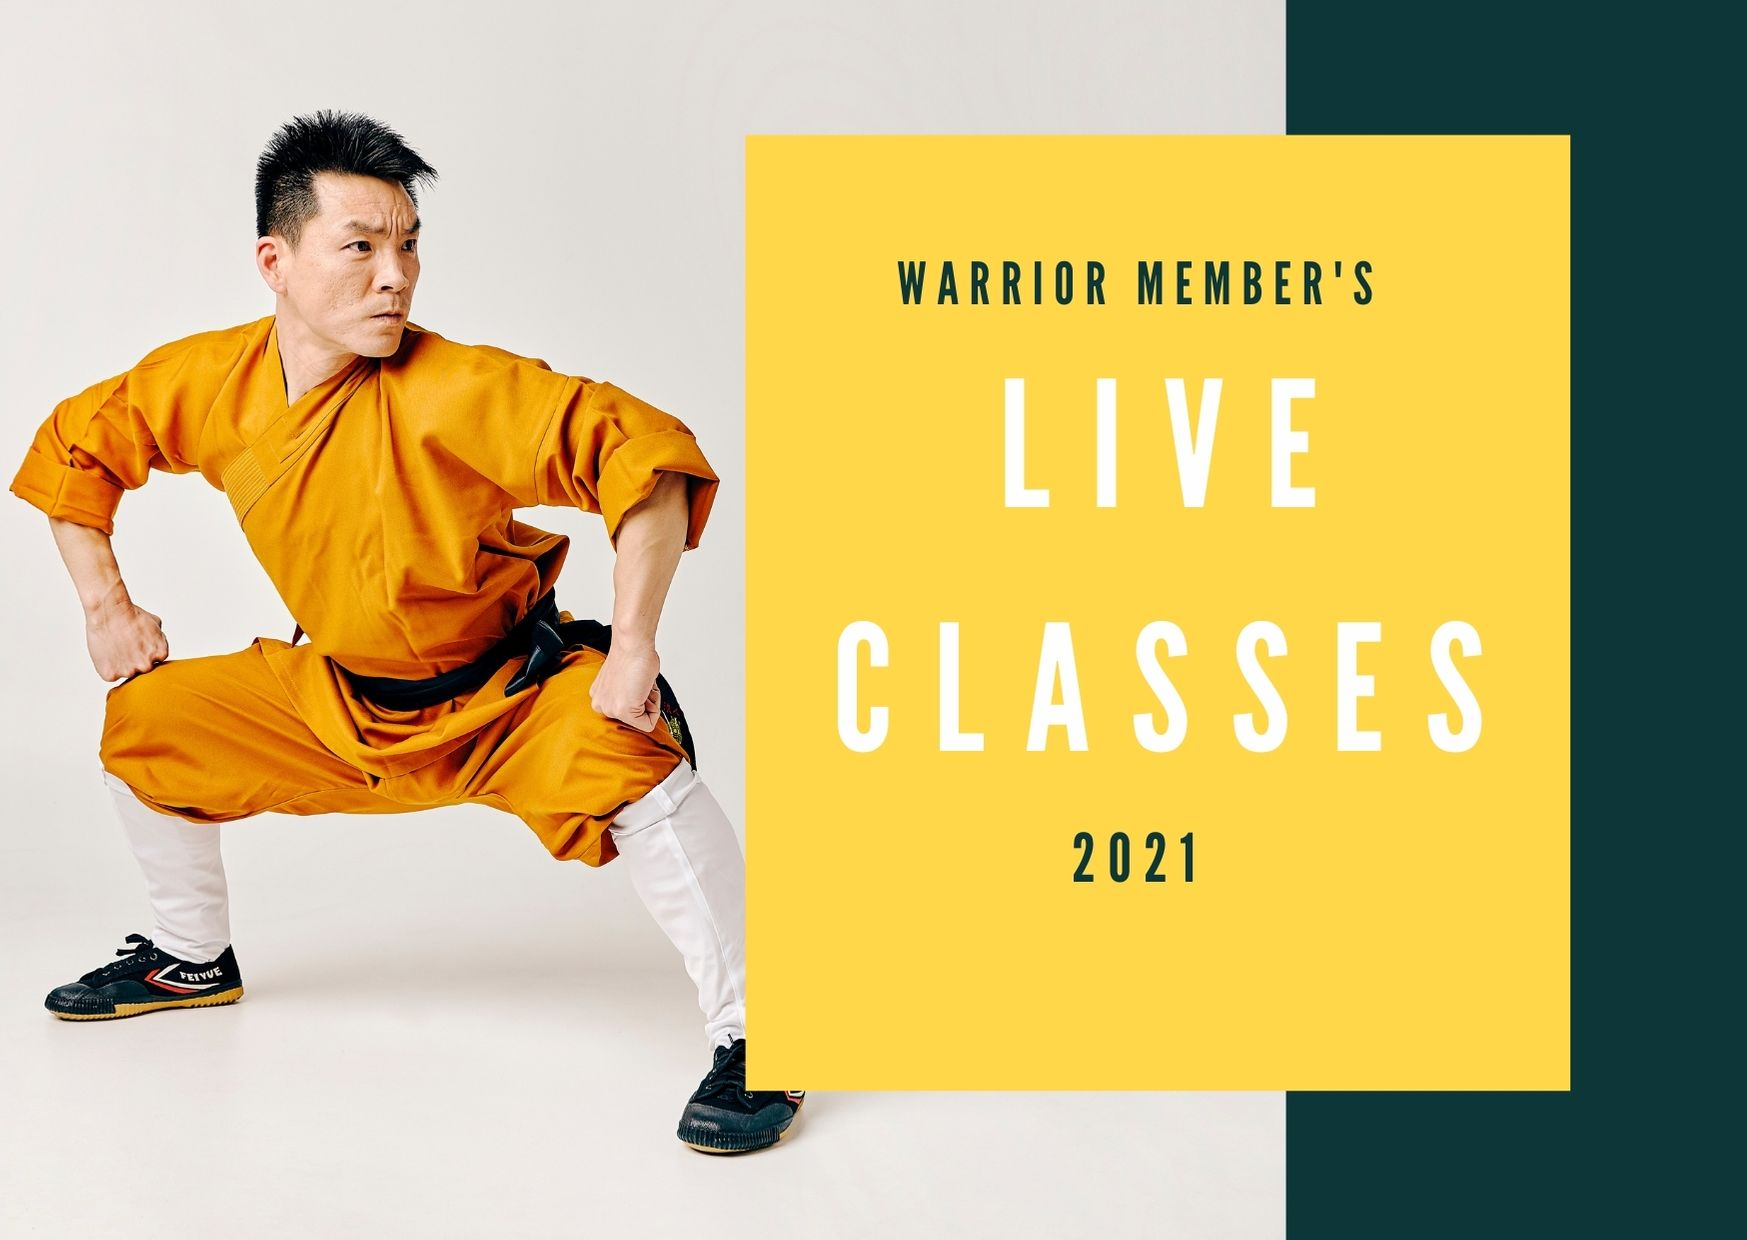 2021 Warrior Member's Interactive Live Classes